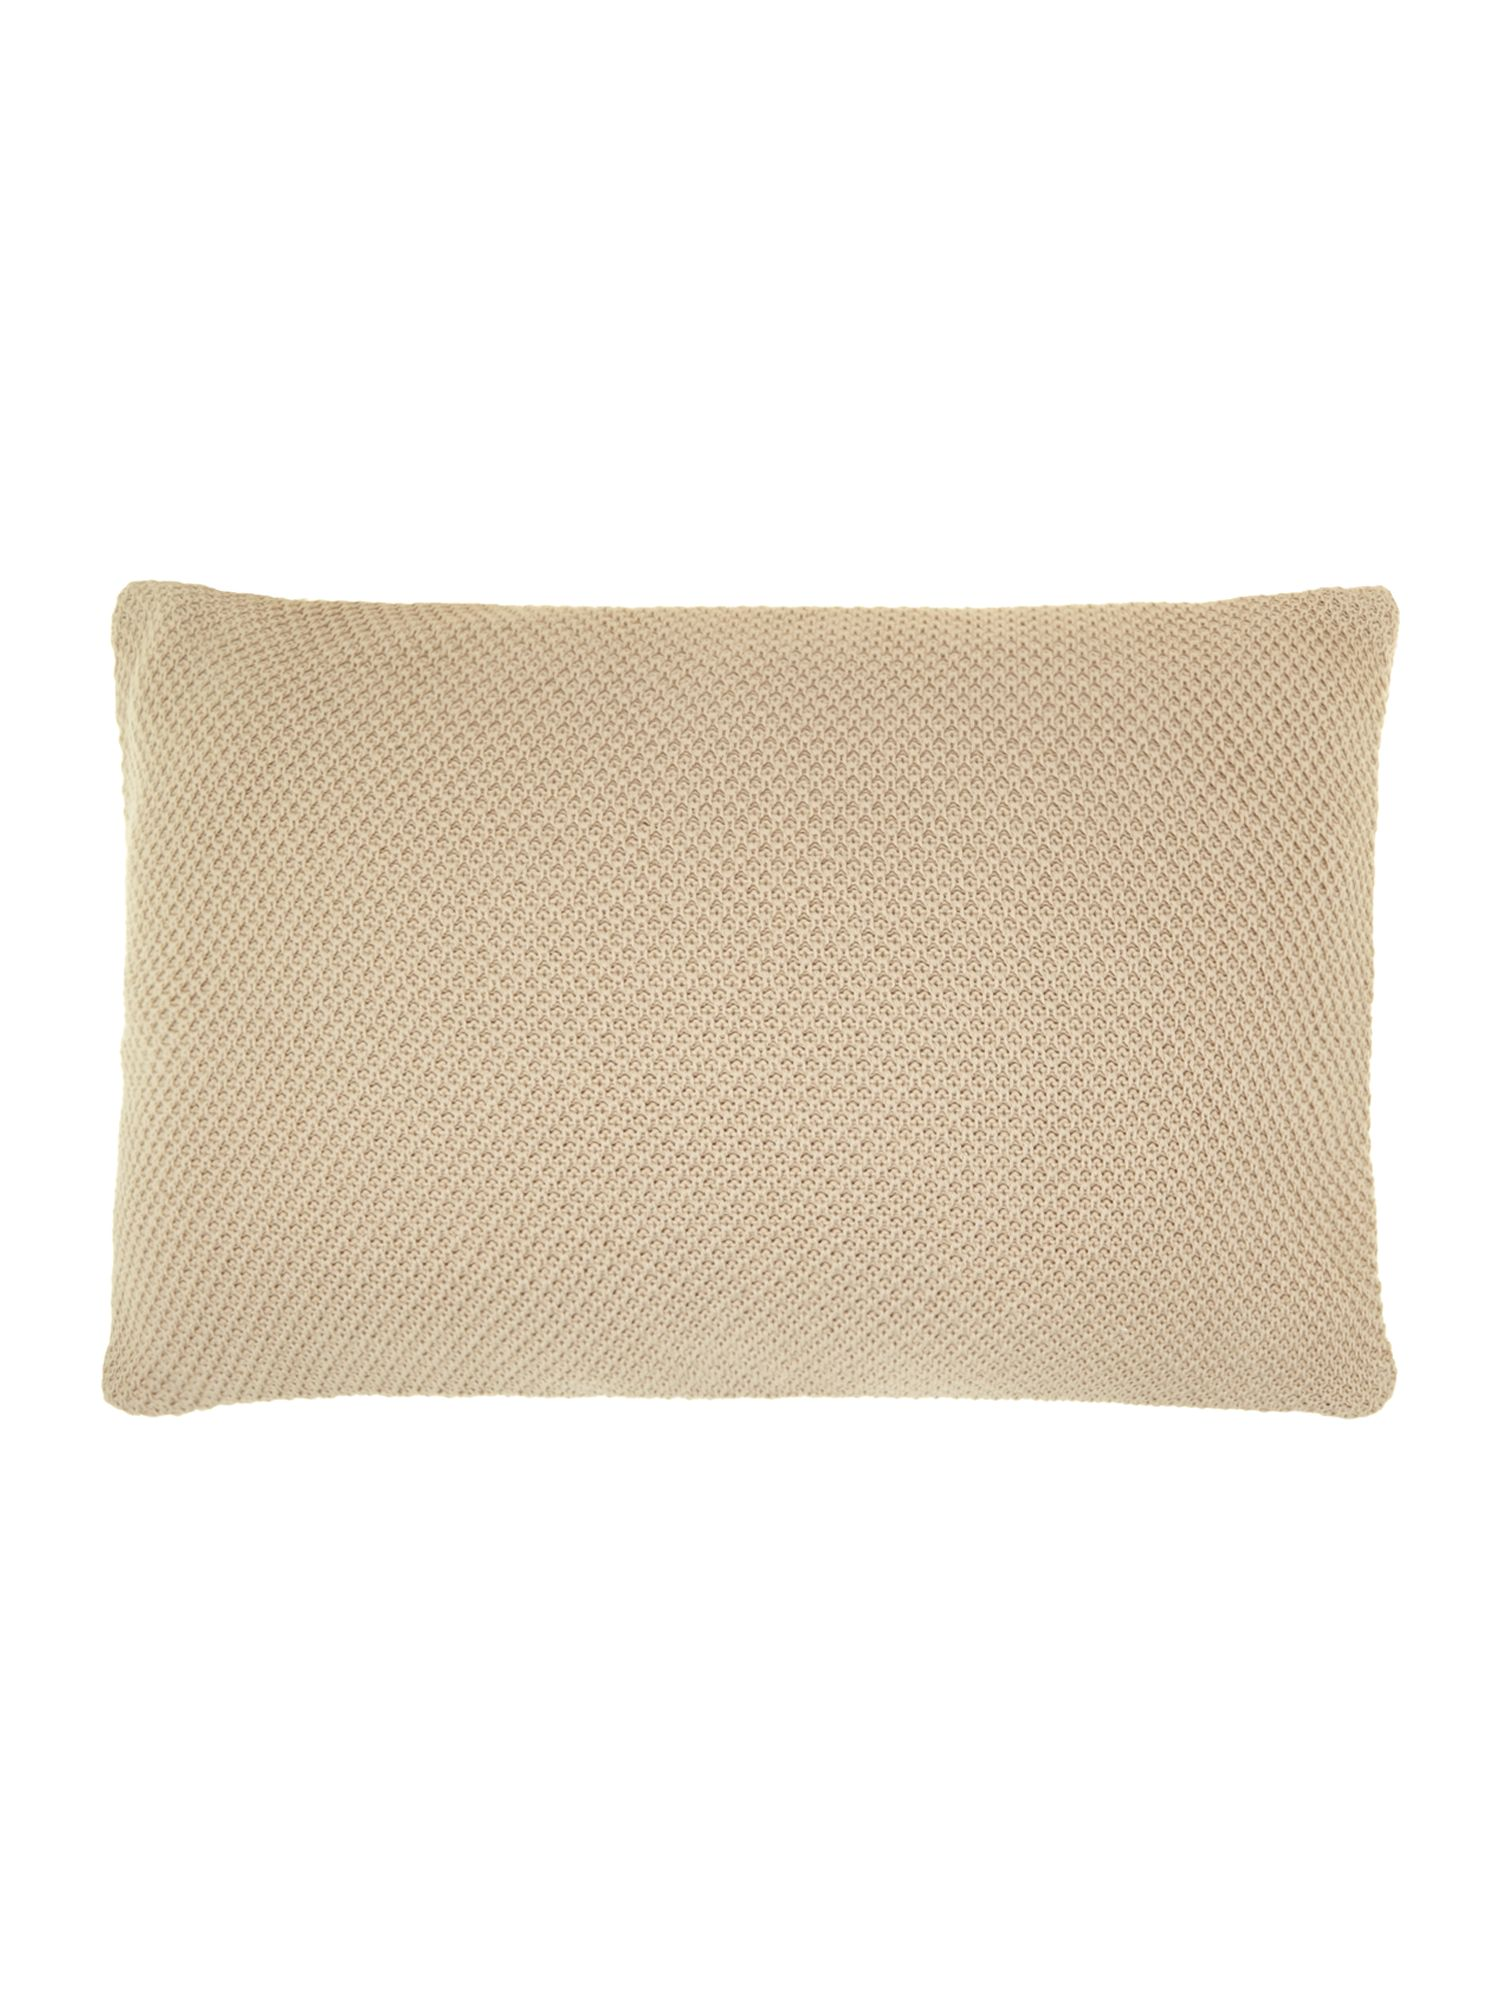 Cream knitted cushion